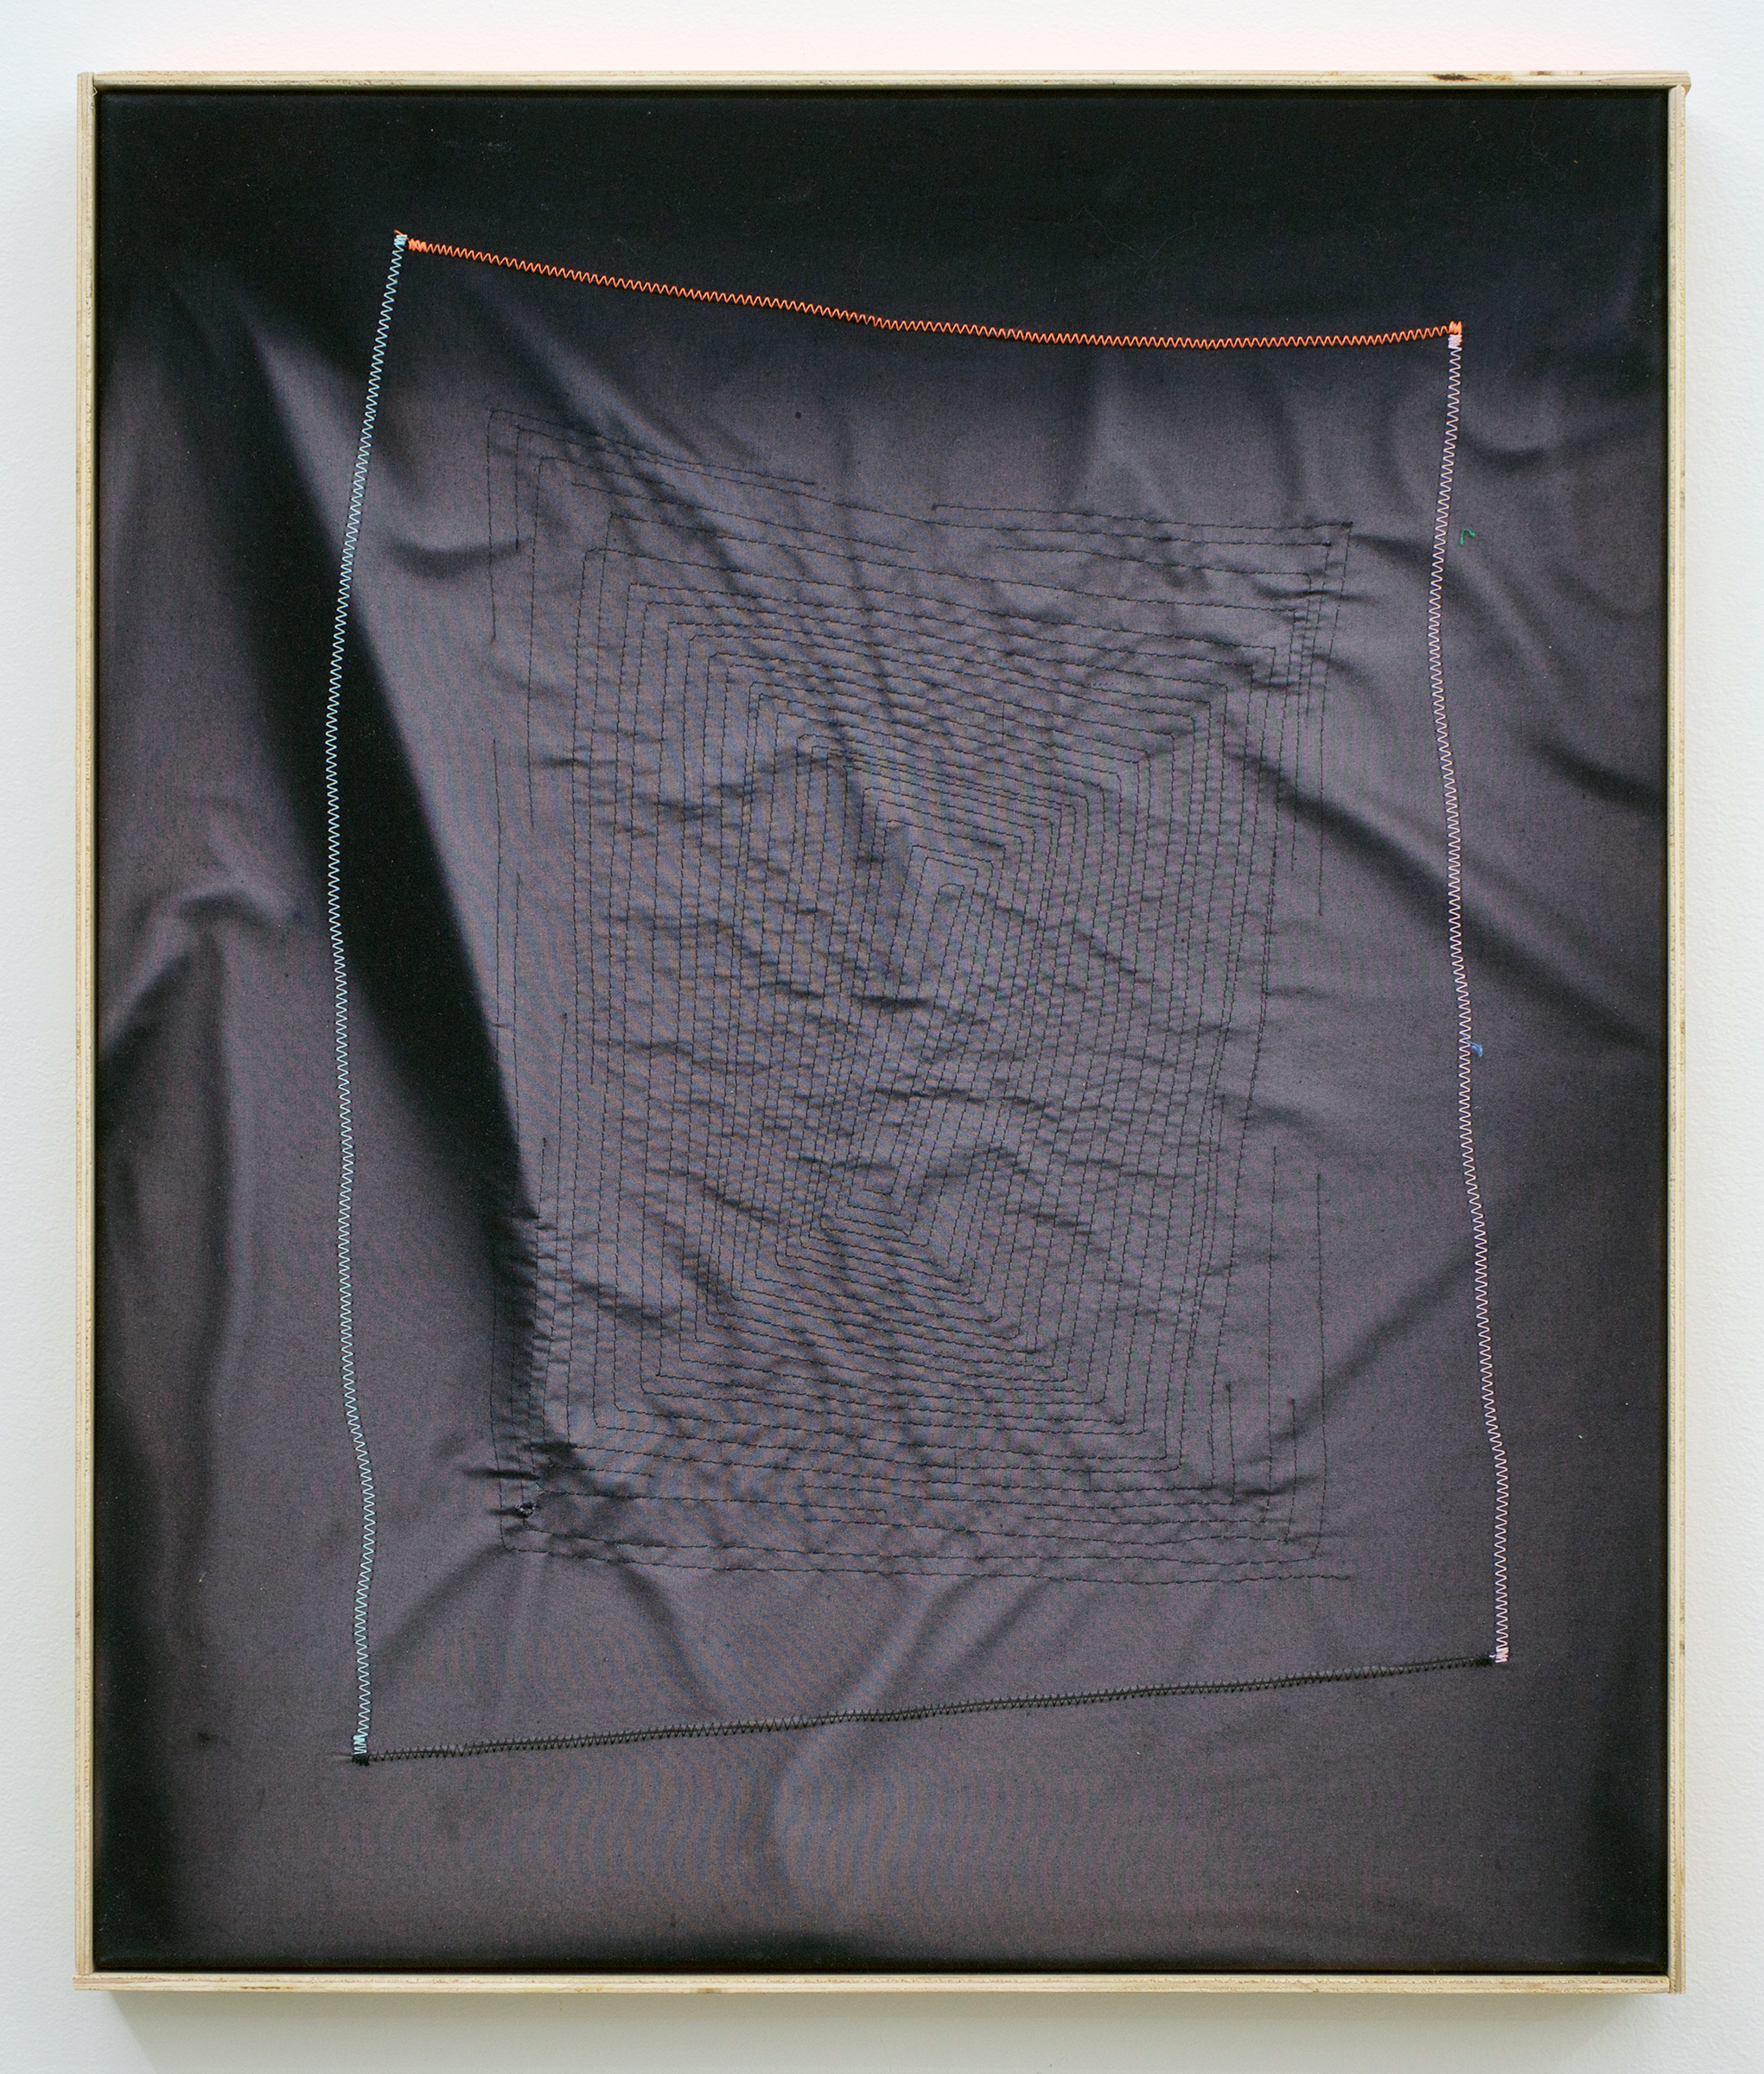 """CHRIS DUNCAN   Ghost Pattern #1 (Summer/Winter 2016) Six-Month Exposure/Oakland , 2017, sun, time and thread on fabric, 24 1/2"""" x 20 1/2"""""""